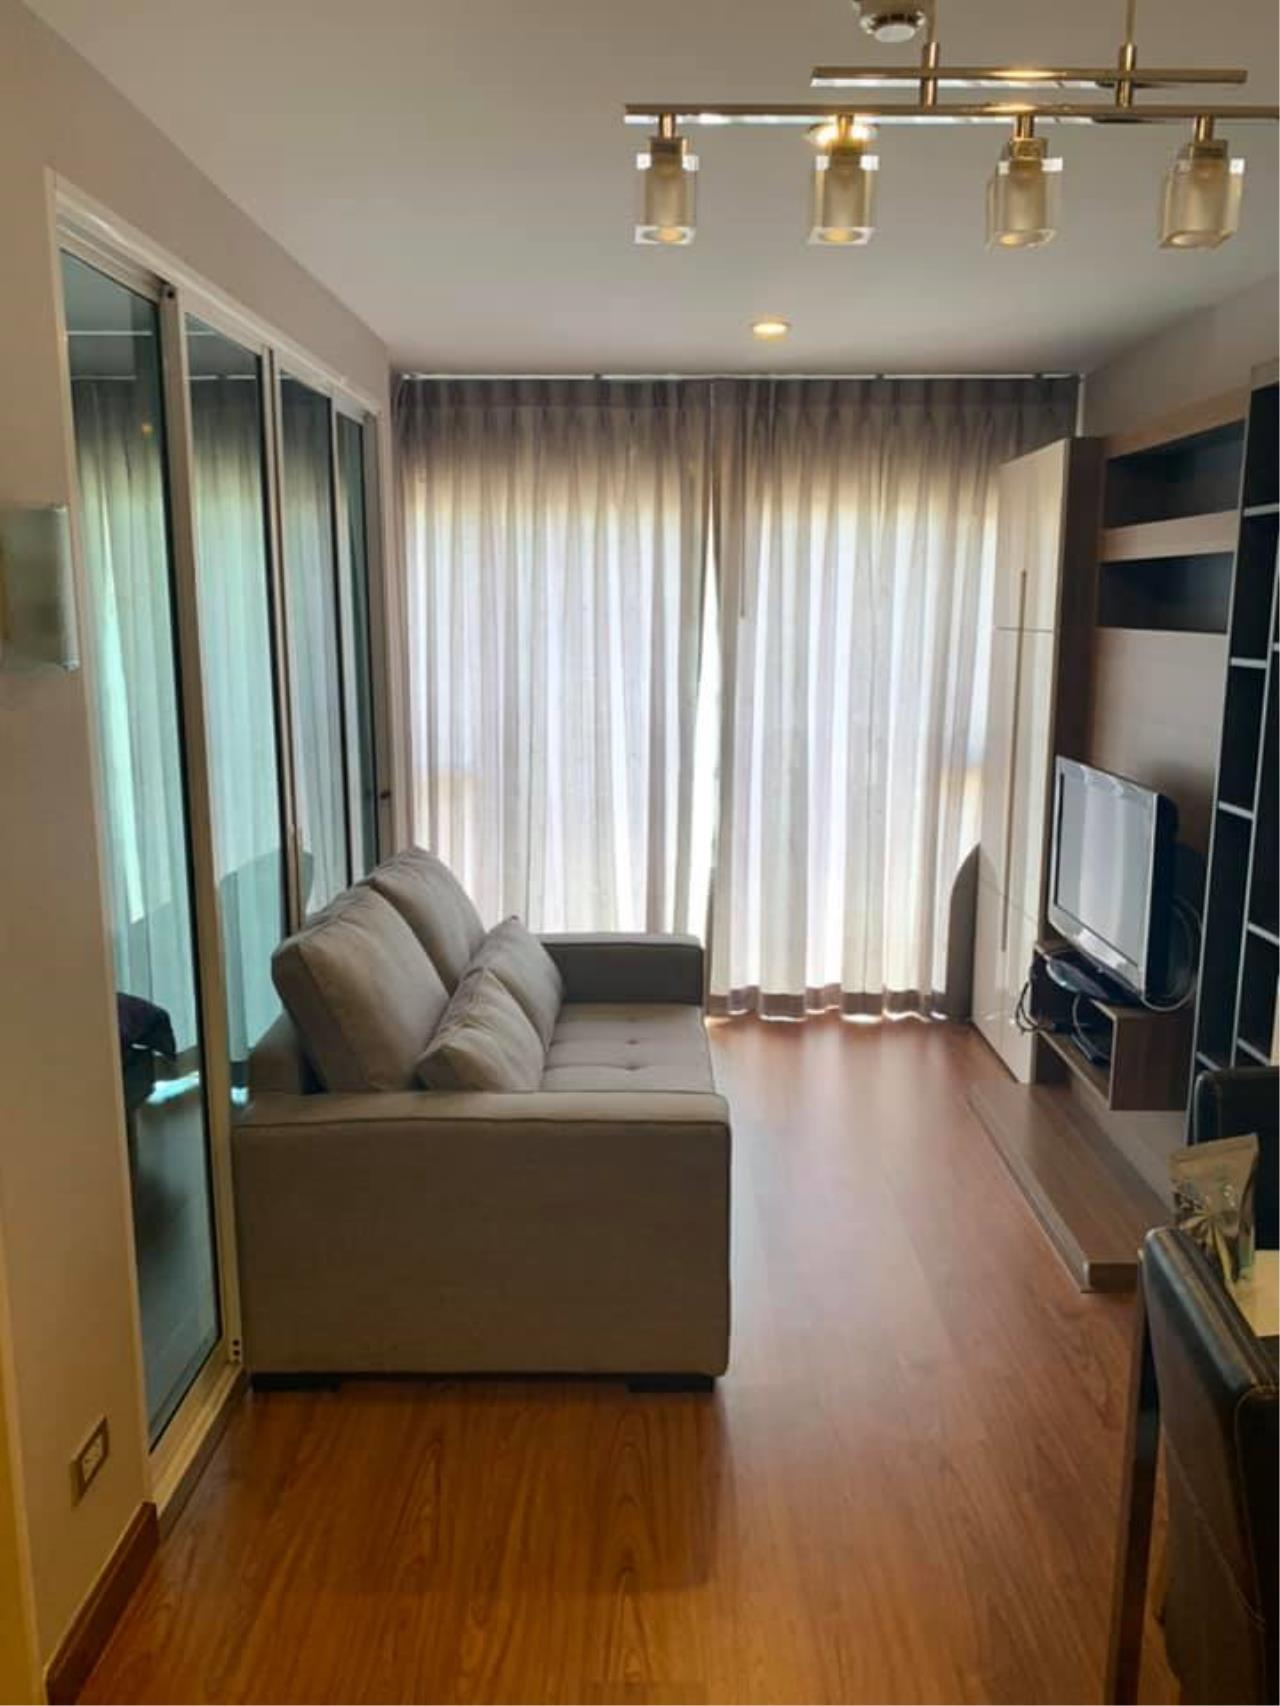 Agent Thawanrat Agency's Condo for rental TOURMALINE GOLD SATHORN – TAKSIN Near BTS.Krung Thon Buri. 1 bedroom,1 bathroom. size 40 sqm.Floor 10 th. fully furnished Ready to move in 12